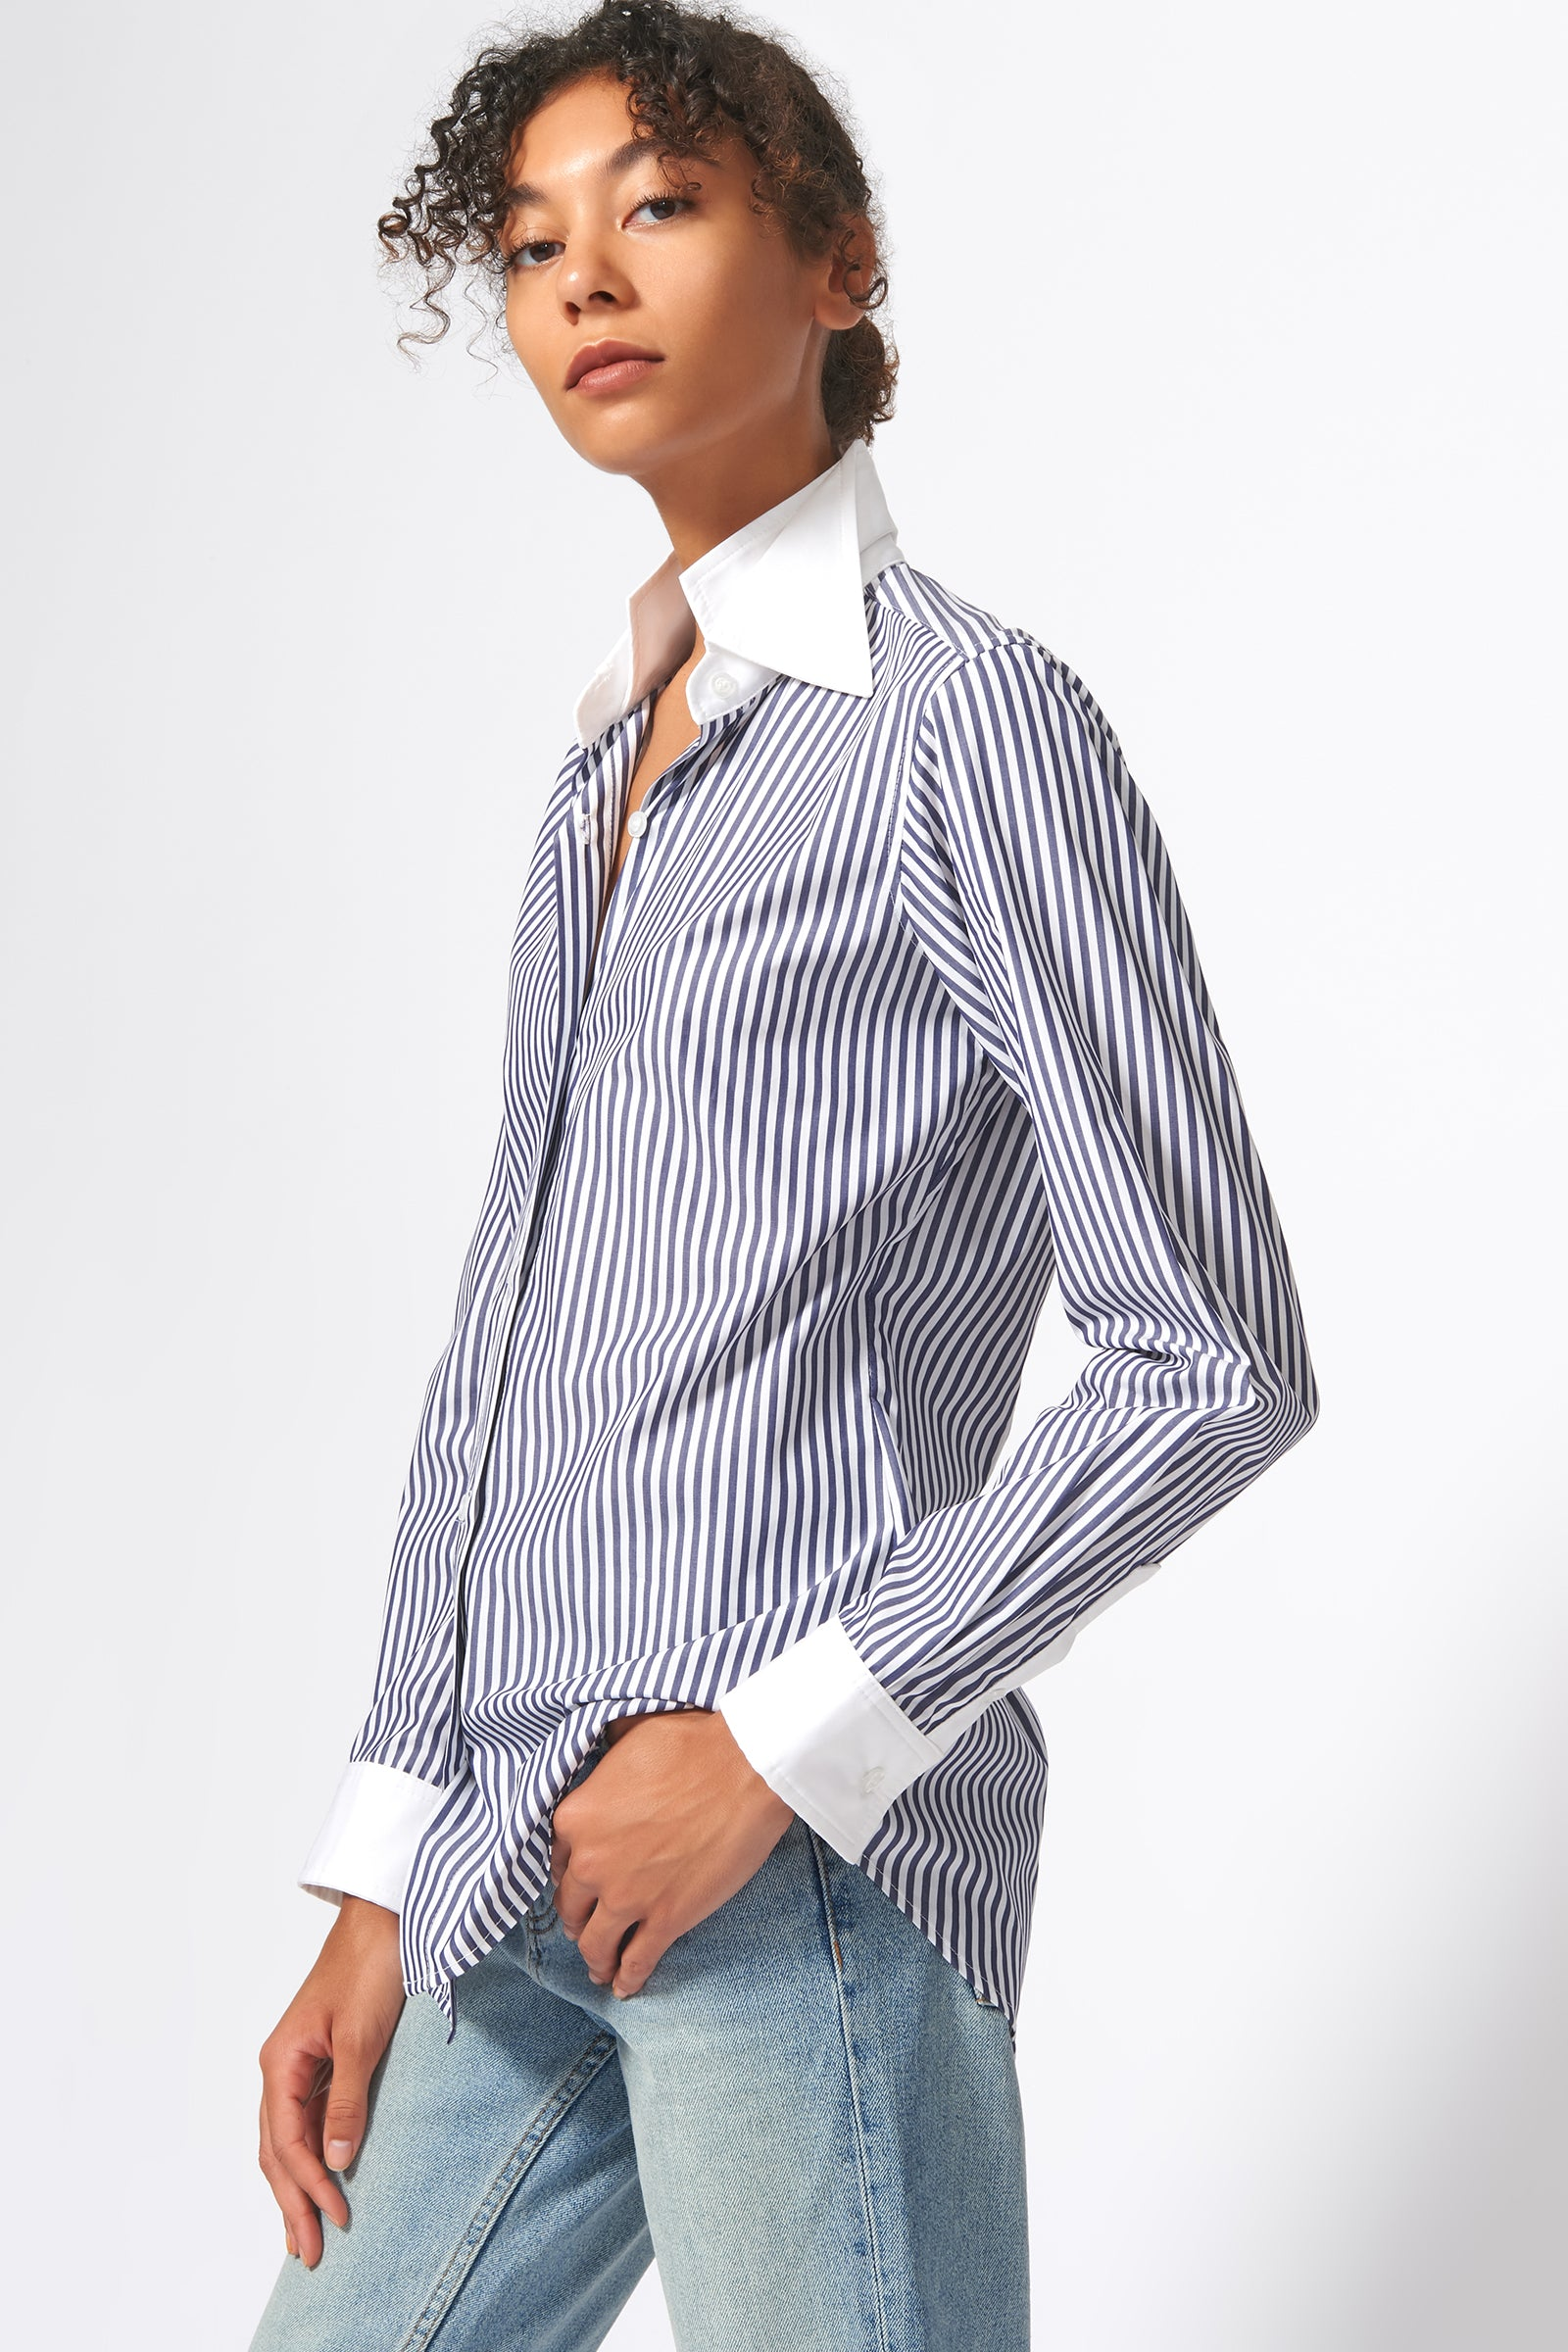 Kal Rieman Double Collar Shirt in Blue and White Stripe Print on Model Side